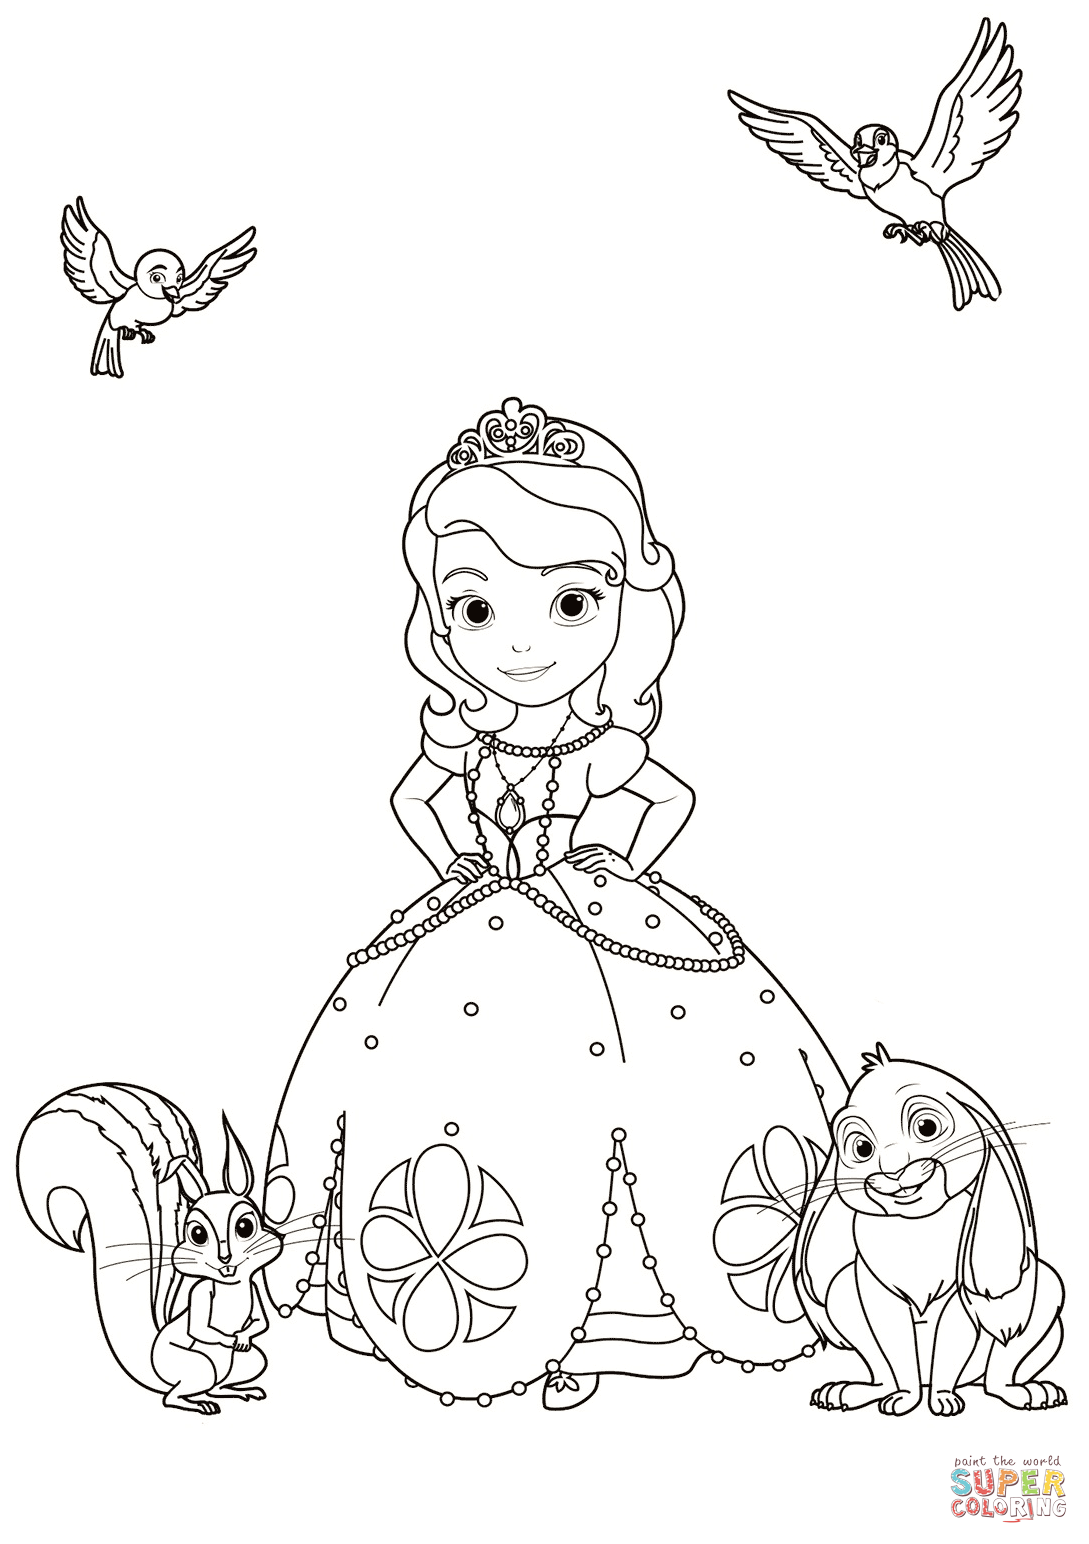 Sofia with Animals coloring page Free Printable Coloring